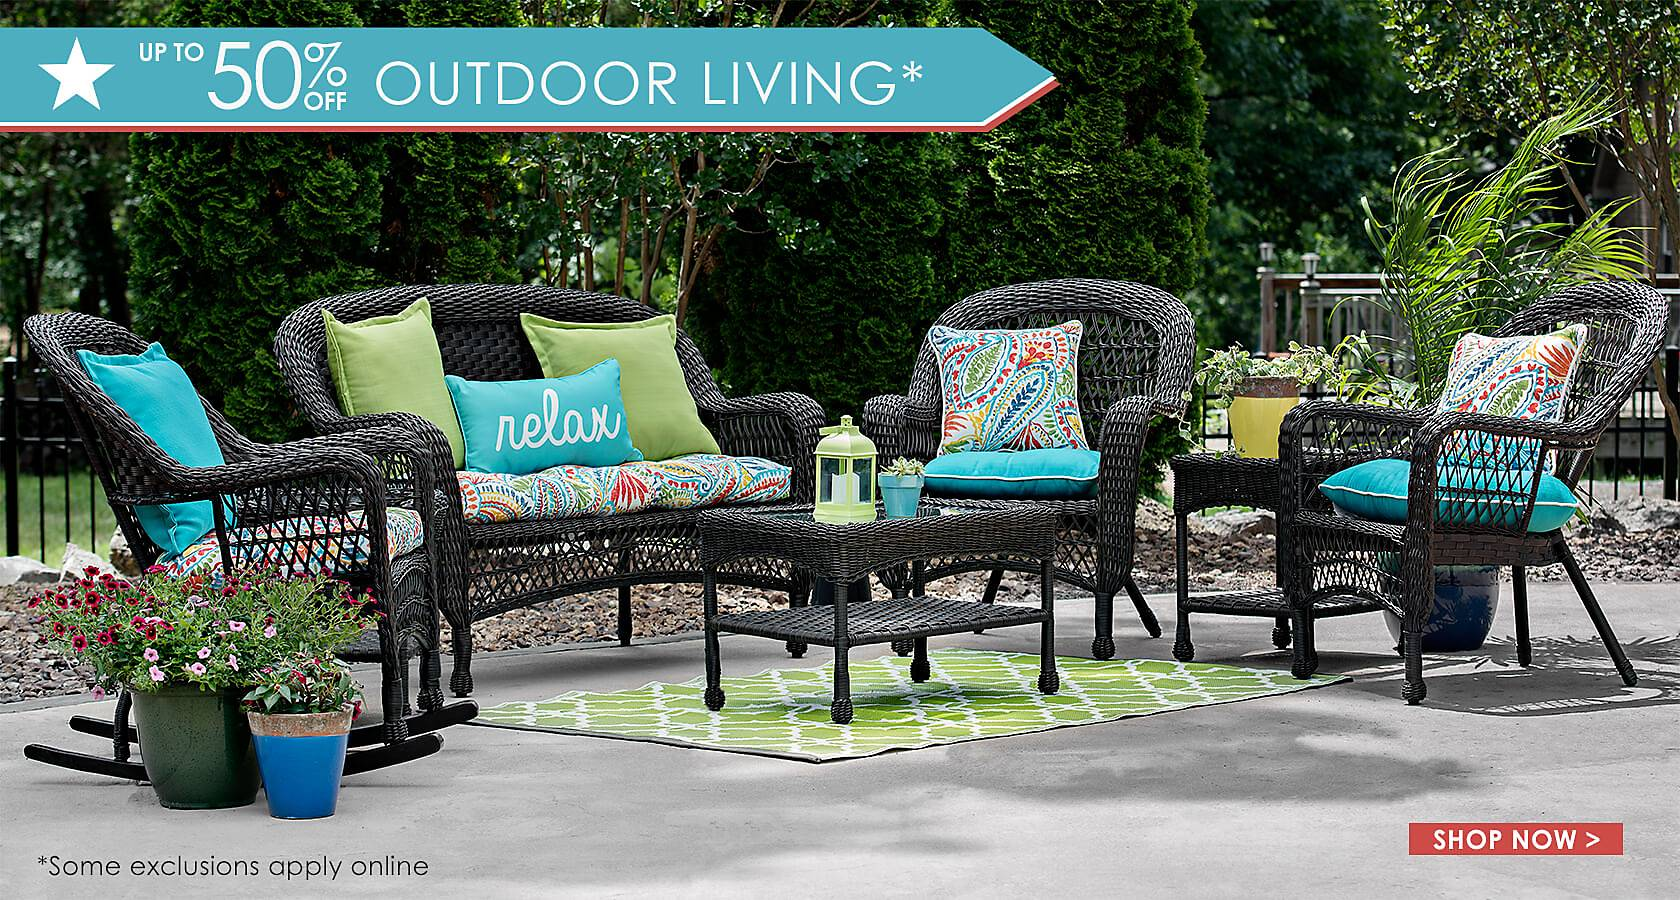 Up to 50% Off Outdoor Living - Shop Now